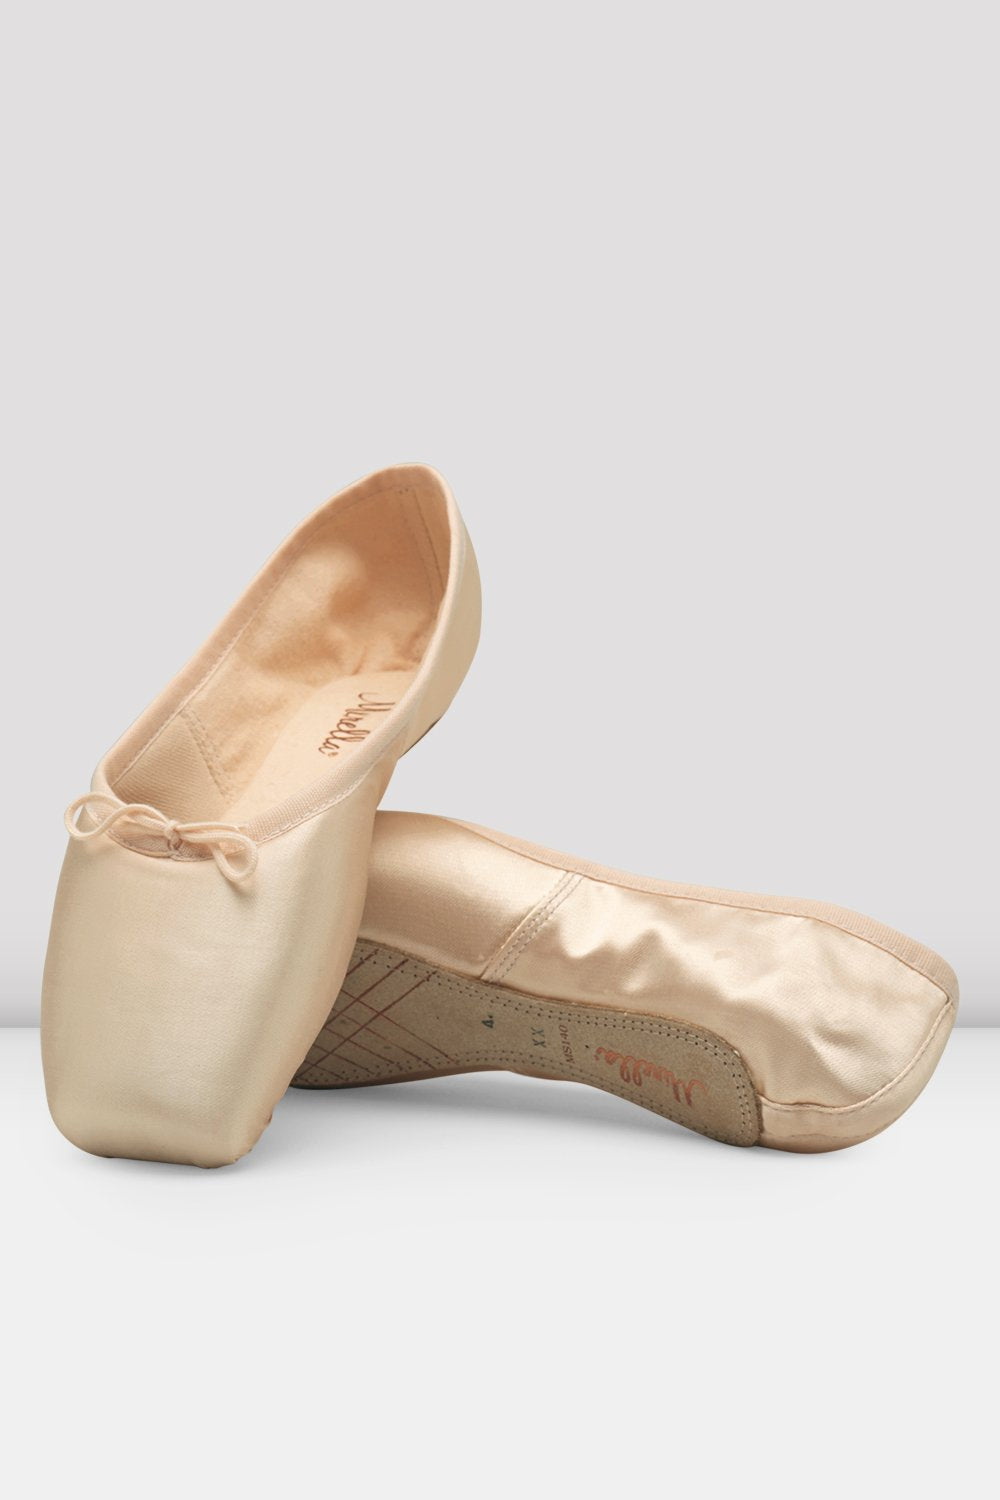 Mirella Whisper Pointe Shoes